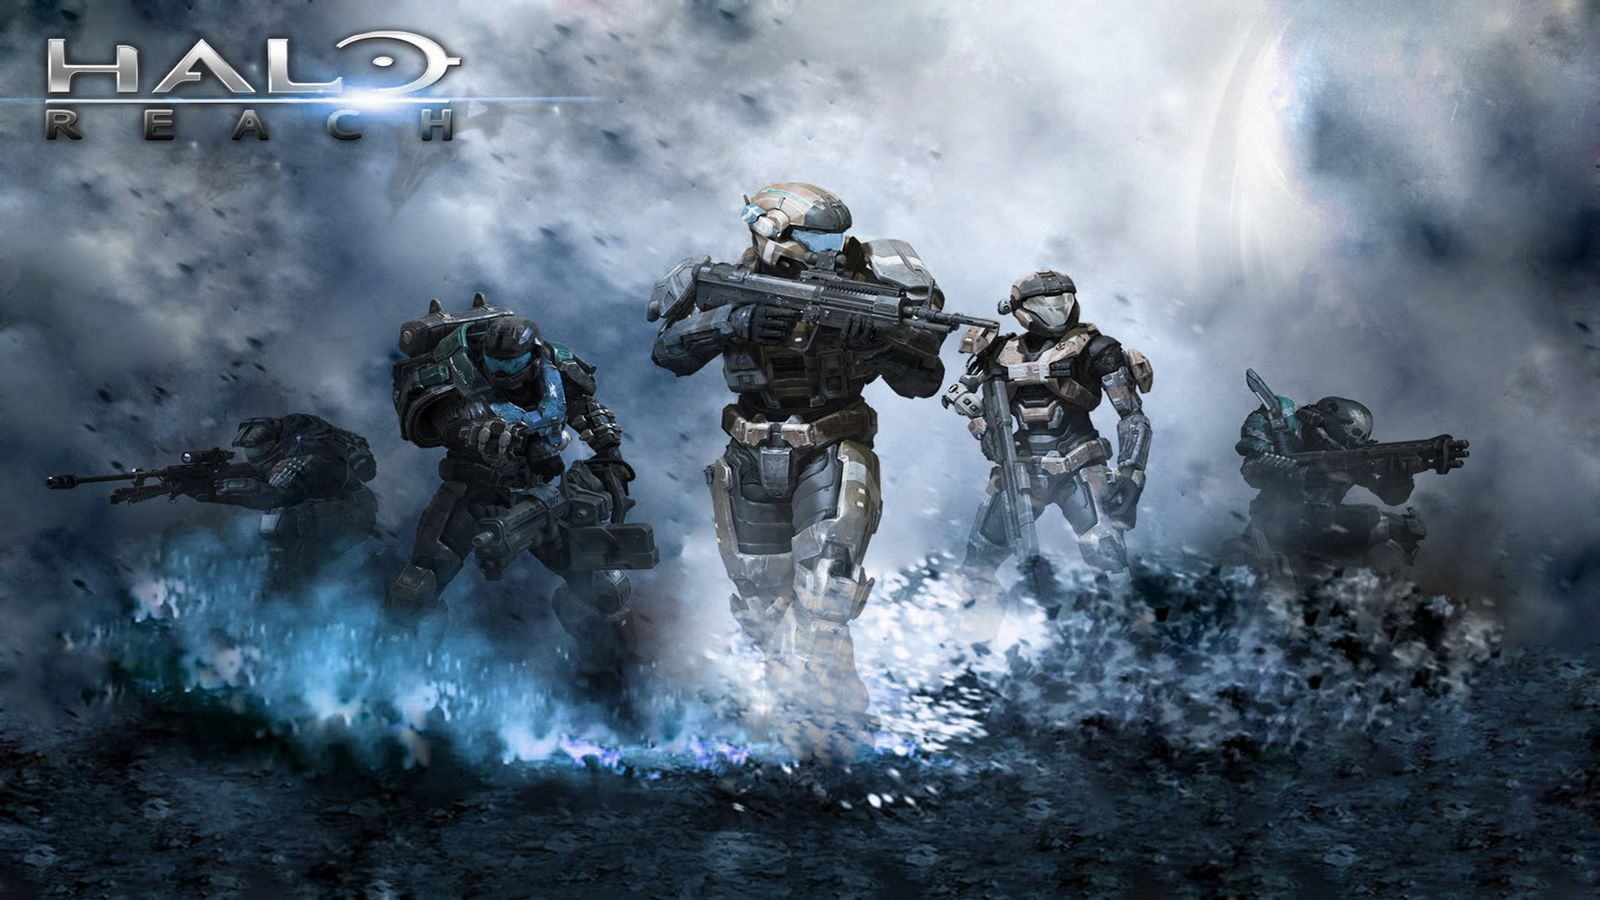 Halo full team Wallpaper